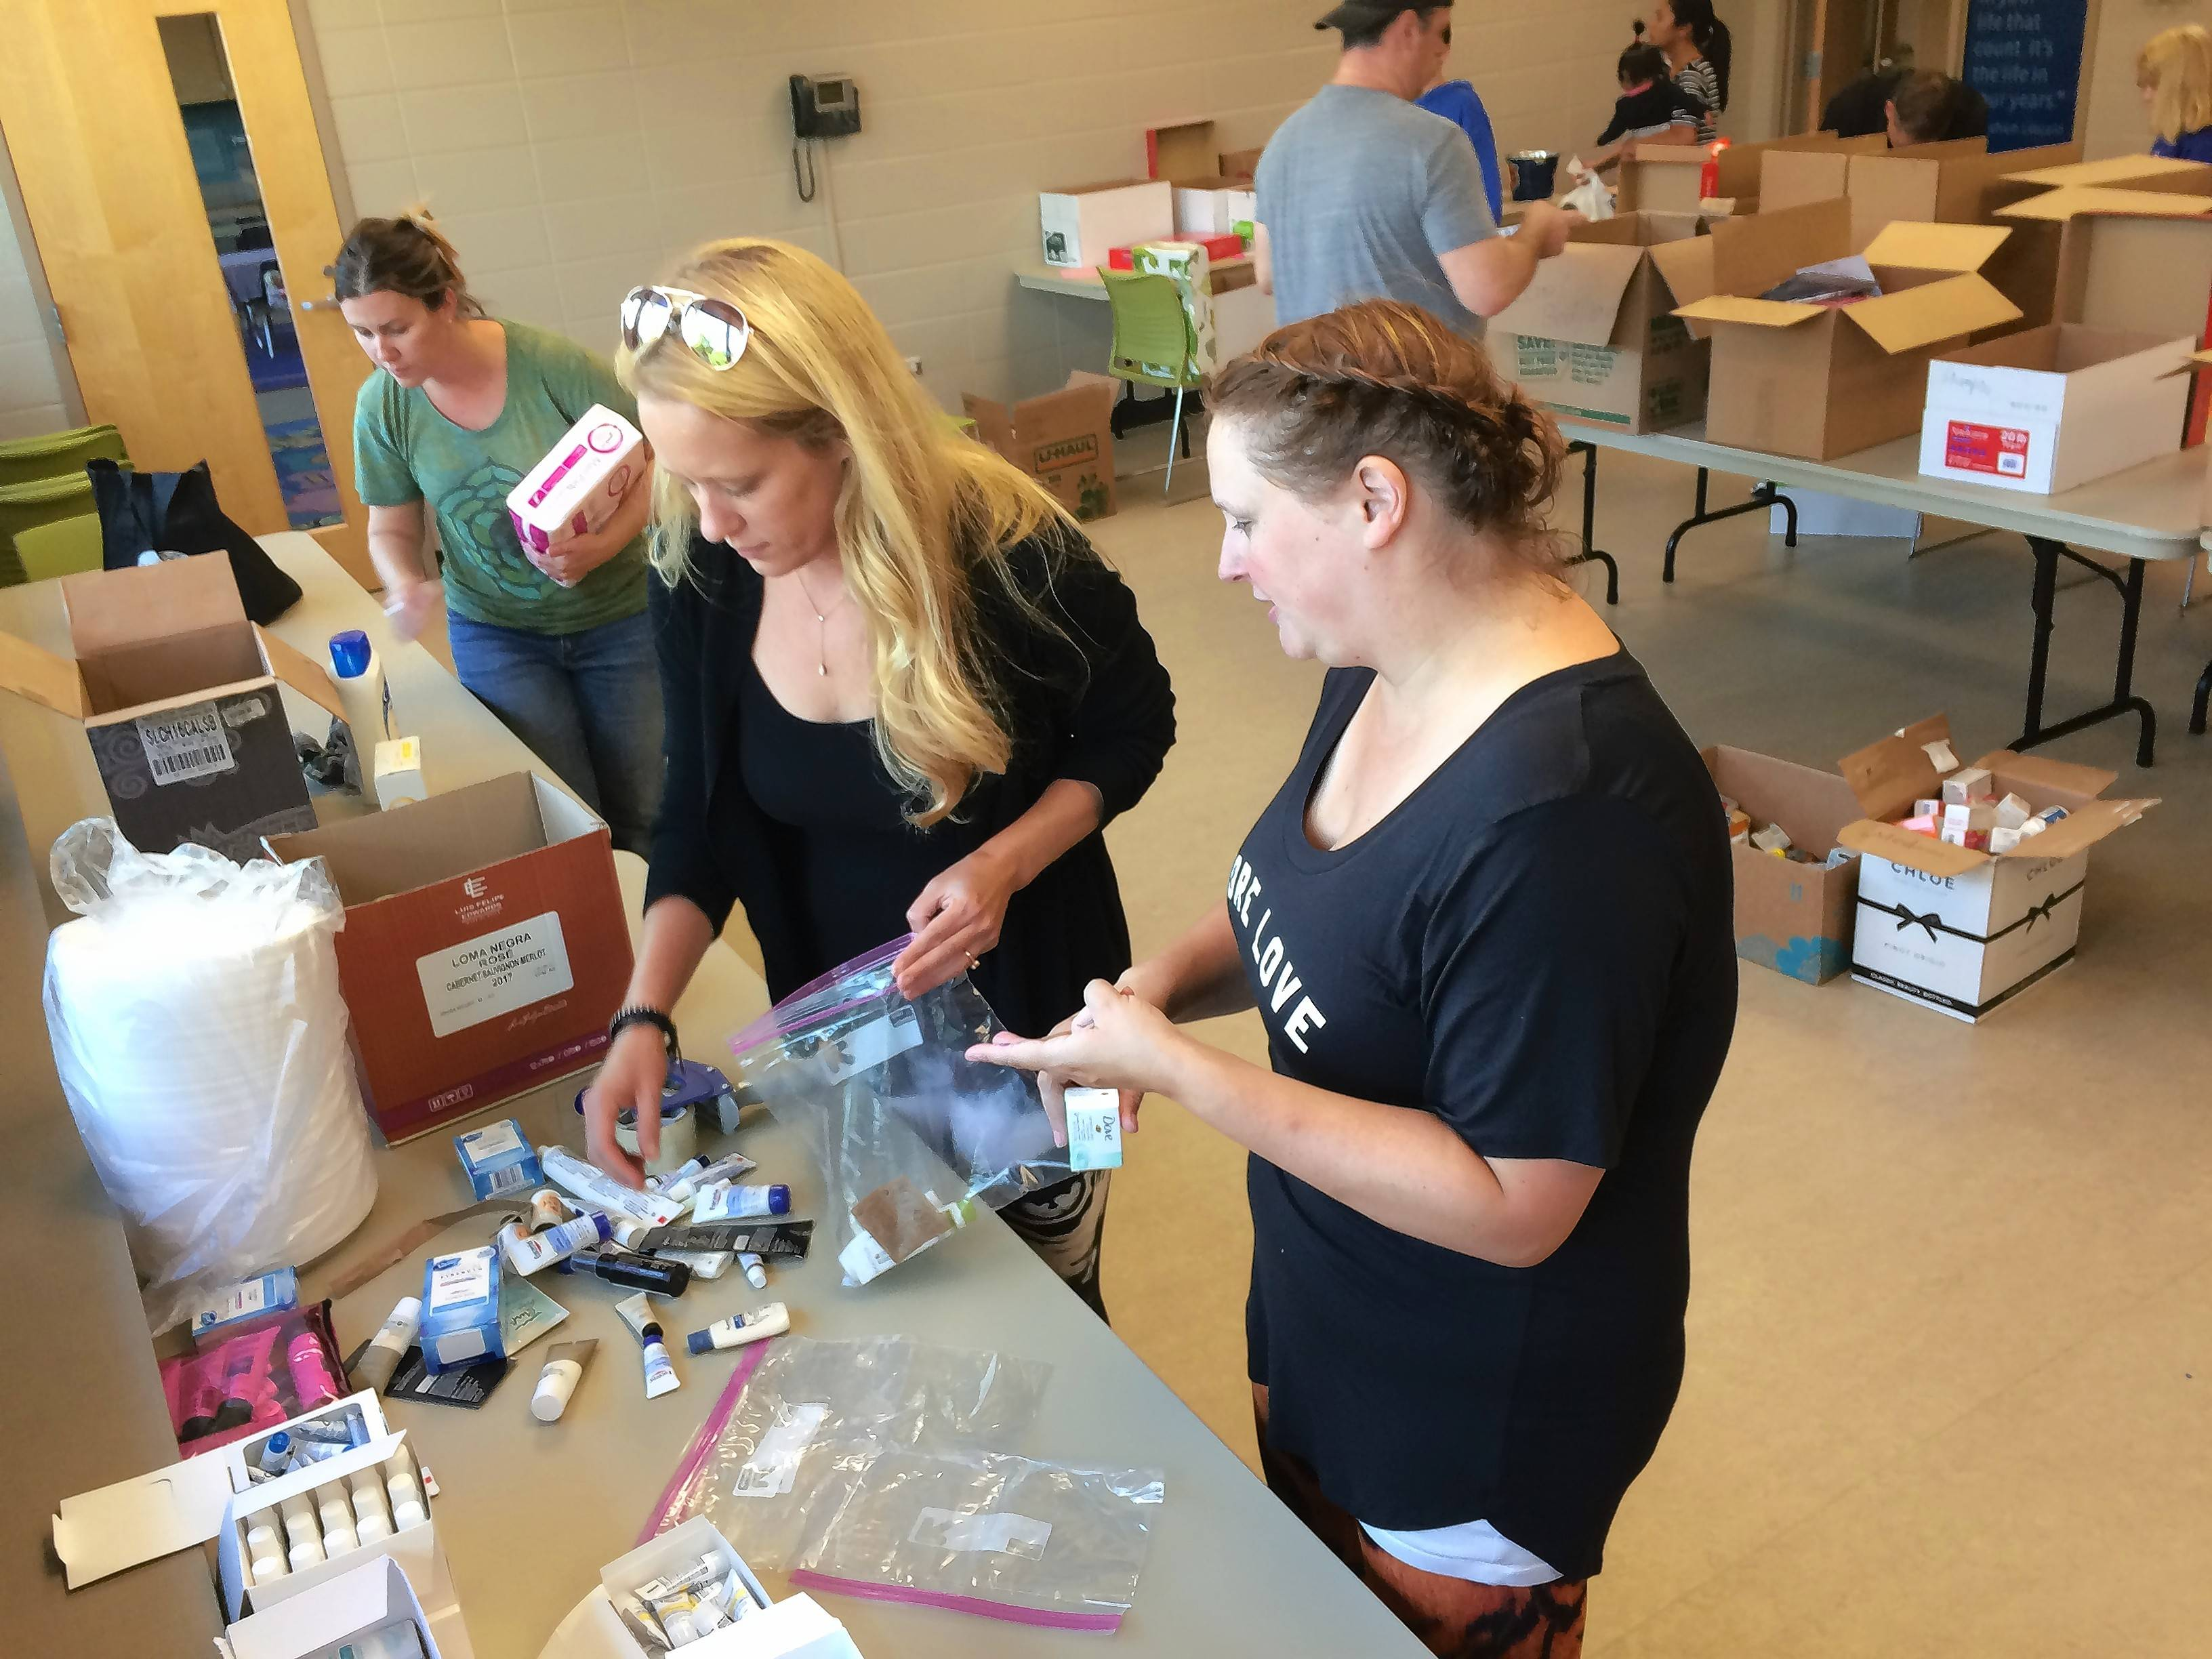 Kristen Klawitter, left, and Karen Gonzales lead Girl Scout Troop 40842 from Patton Elementary School in Arlington Heights. They sorted through donations for Hurricane Harvey victims in Texas on Saturday at Camelot Park Community Center in Arlington Heights. The women were scheduled to begin driving a truck load of donations to Texas in the afternoon.